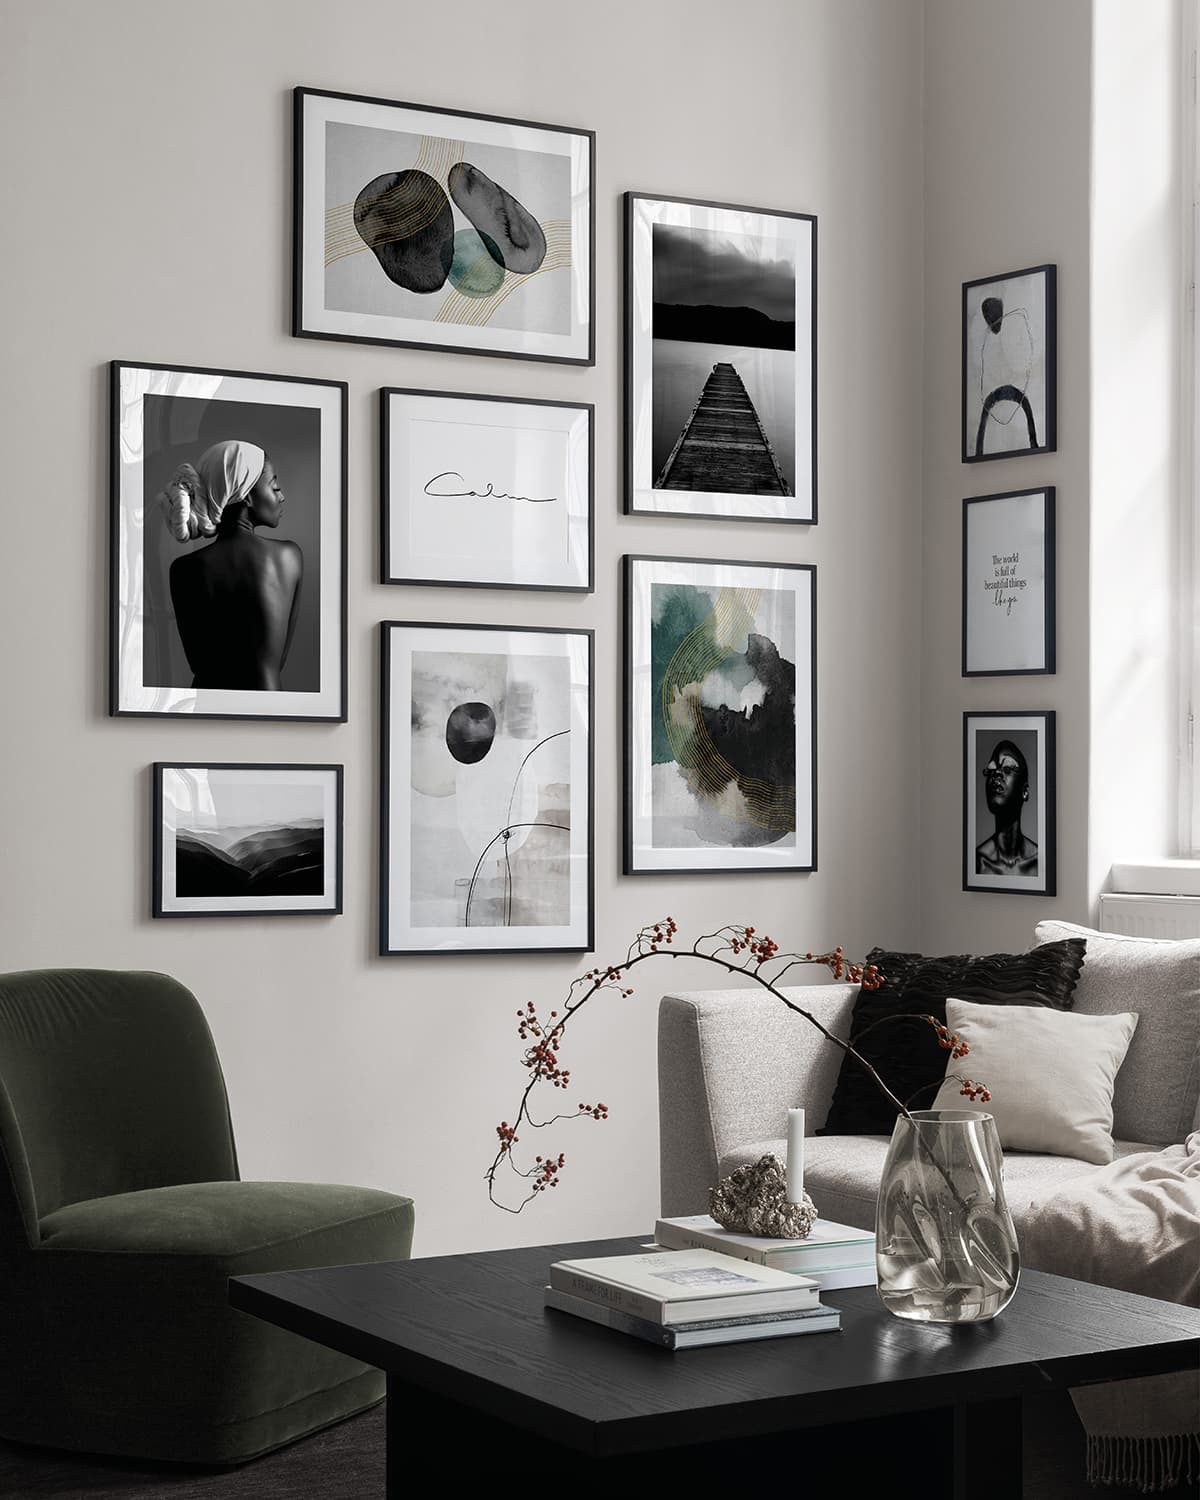 think black frame gallery wall with black and white desenio artworks wrapping around corner